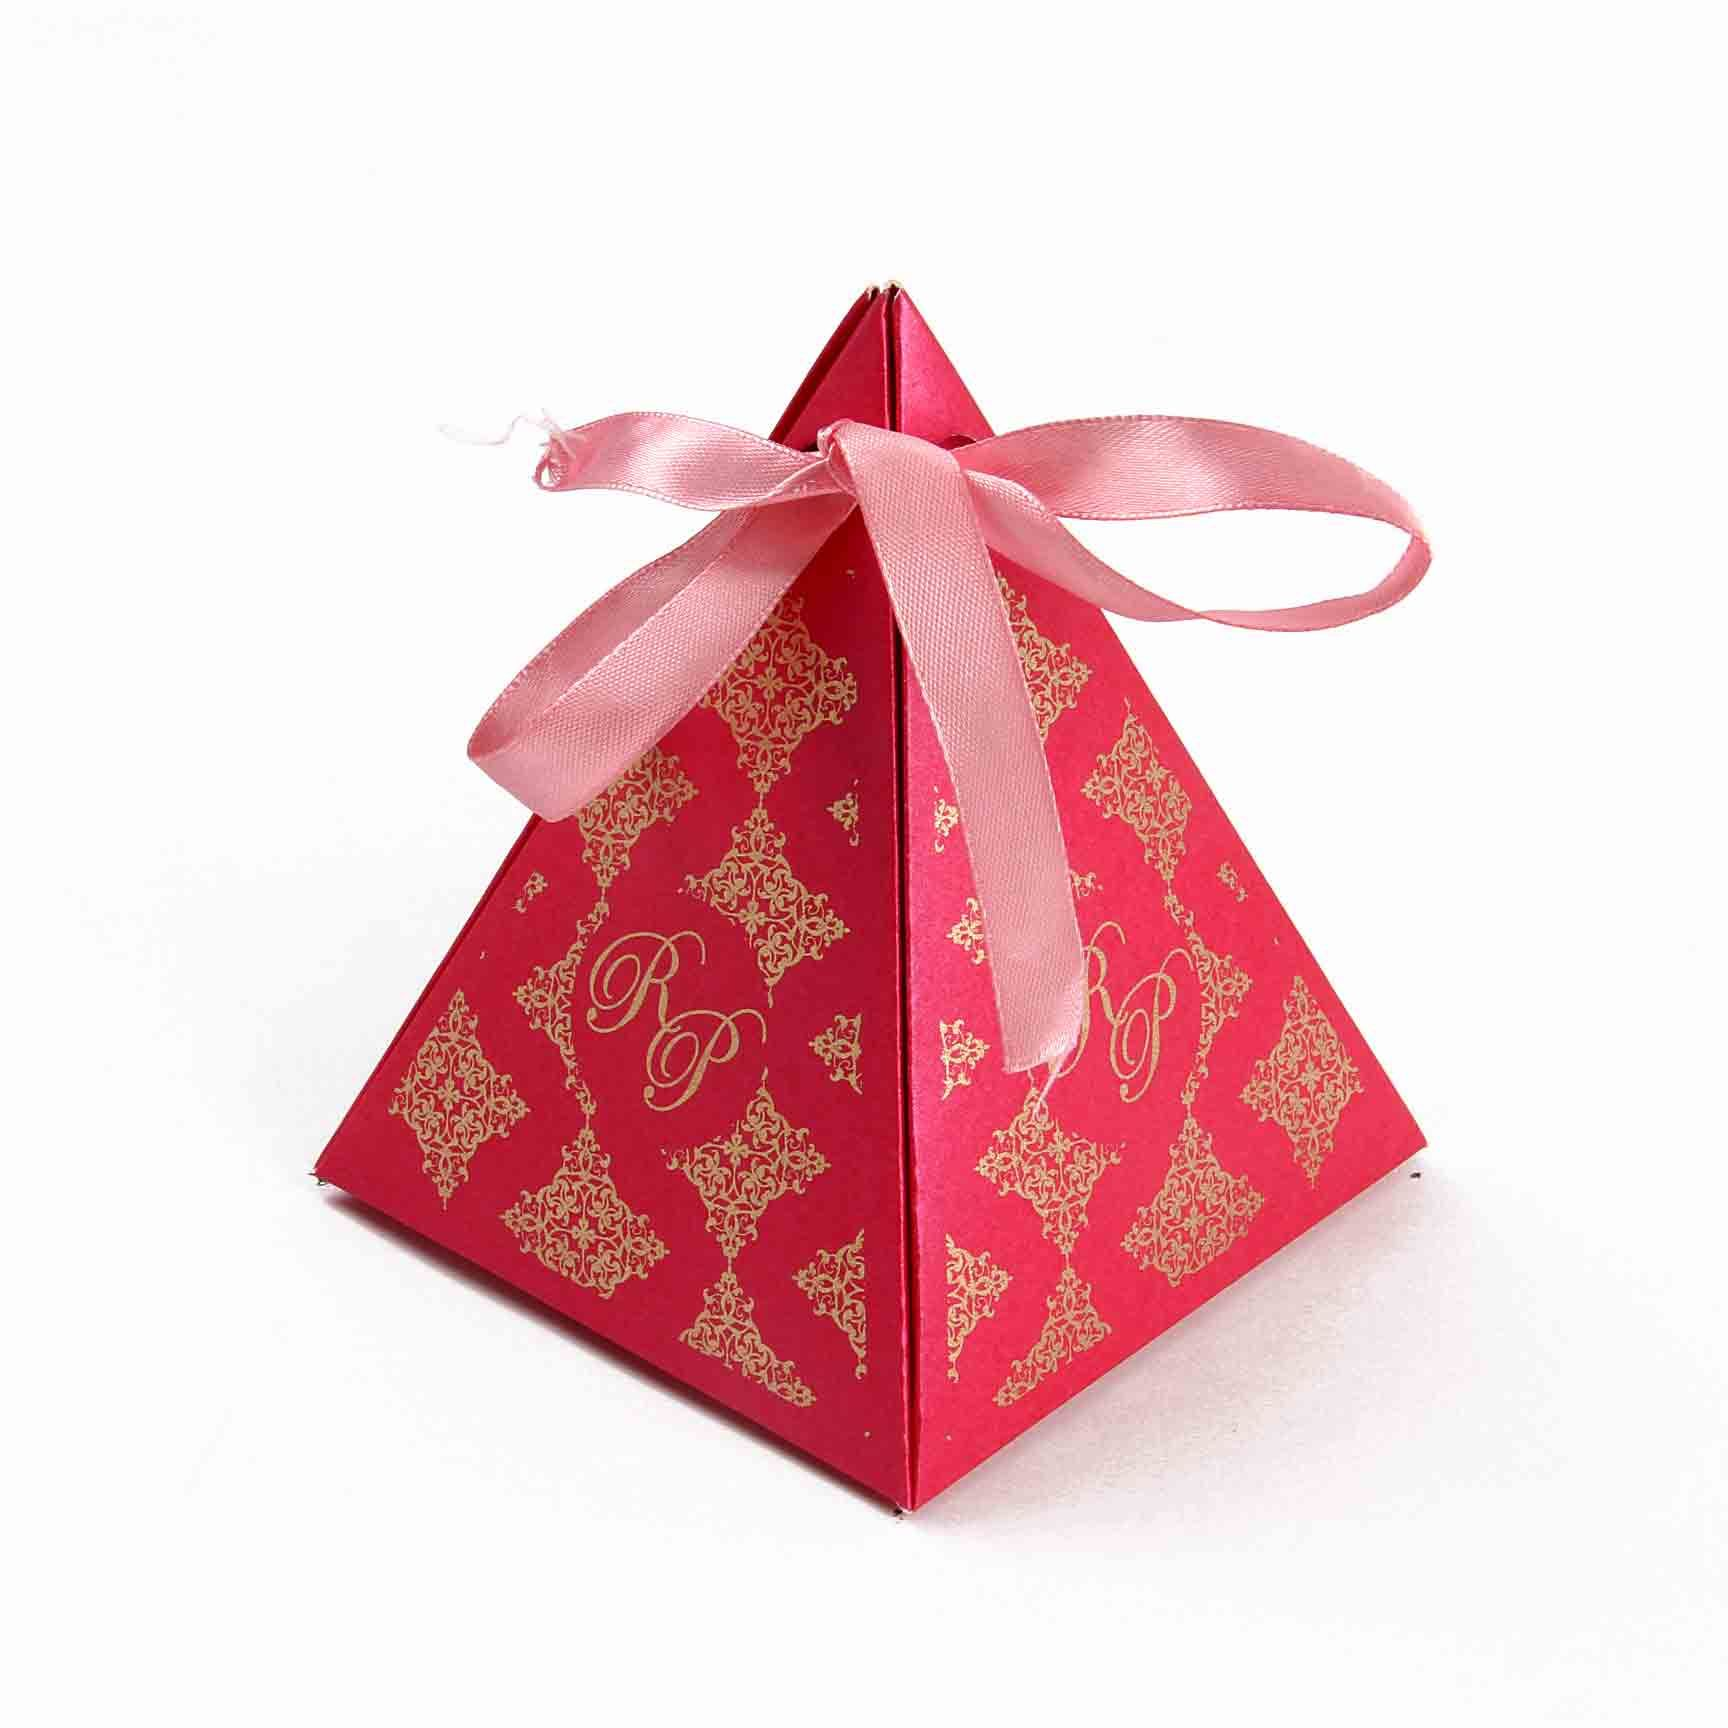 Party Favor Boxes Customized Favor Boxes Candy Boxes Wedding Favor Box Wholesale Personalized Favors Wedding Favor Boxes Custom Favor